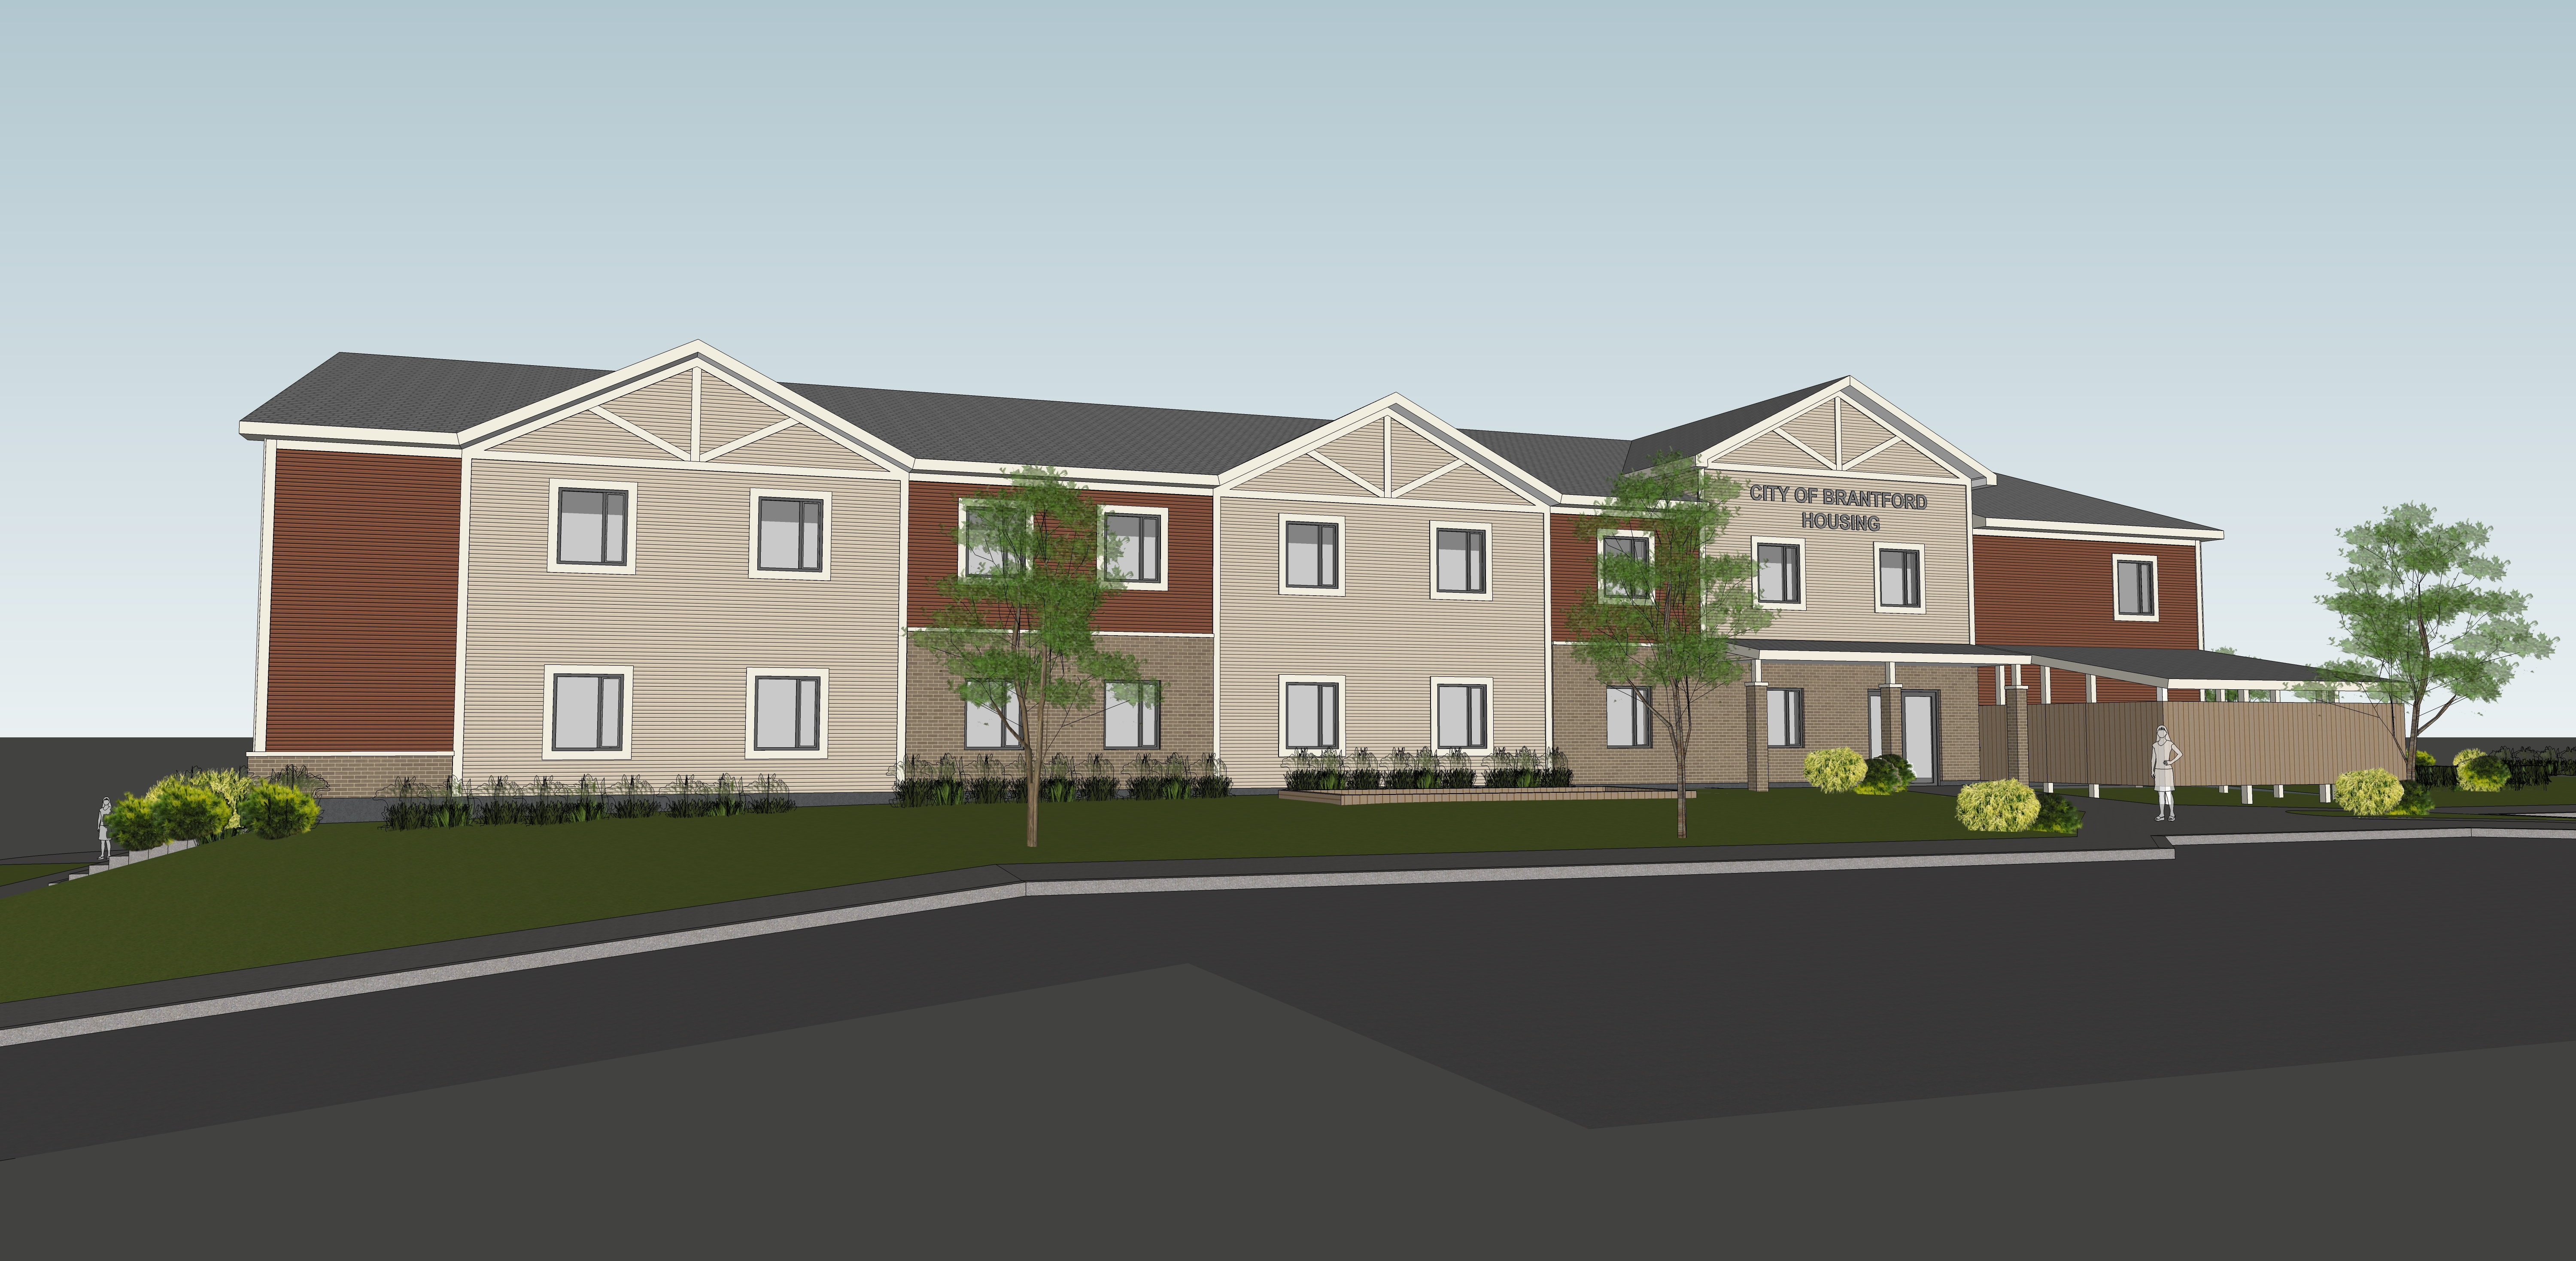 Rendering of Marlene Ave